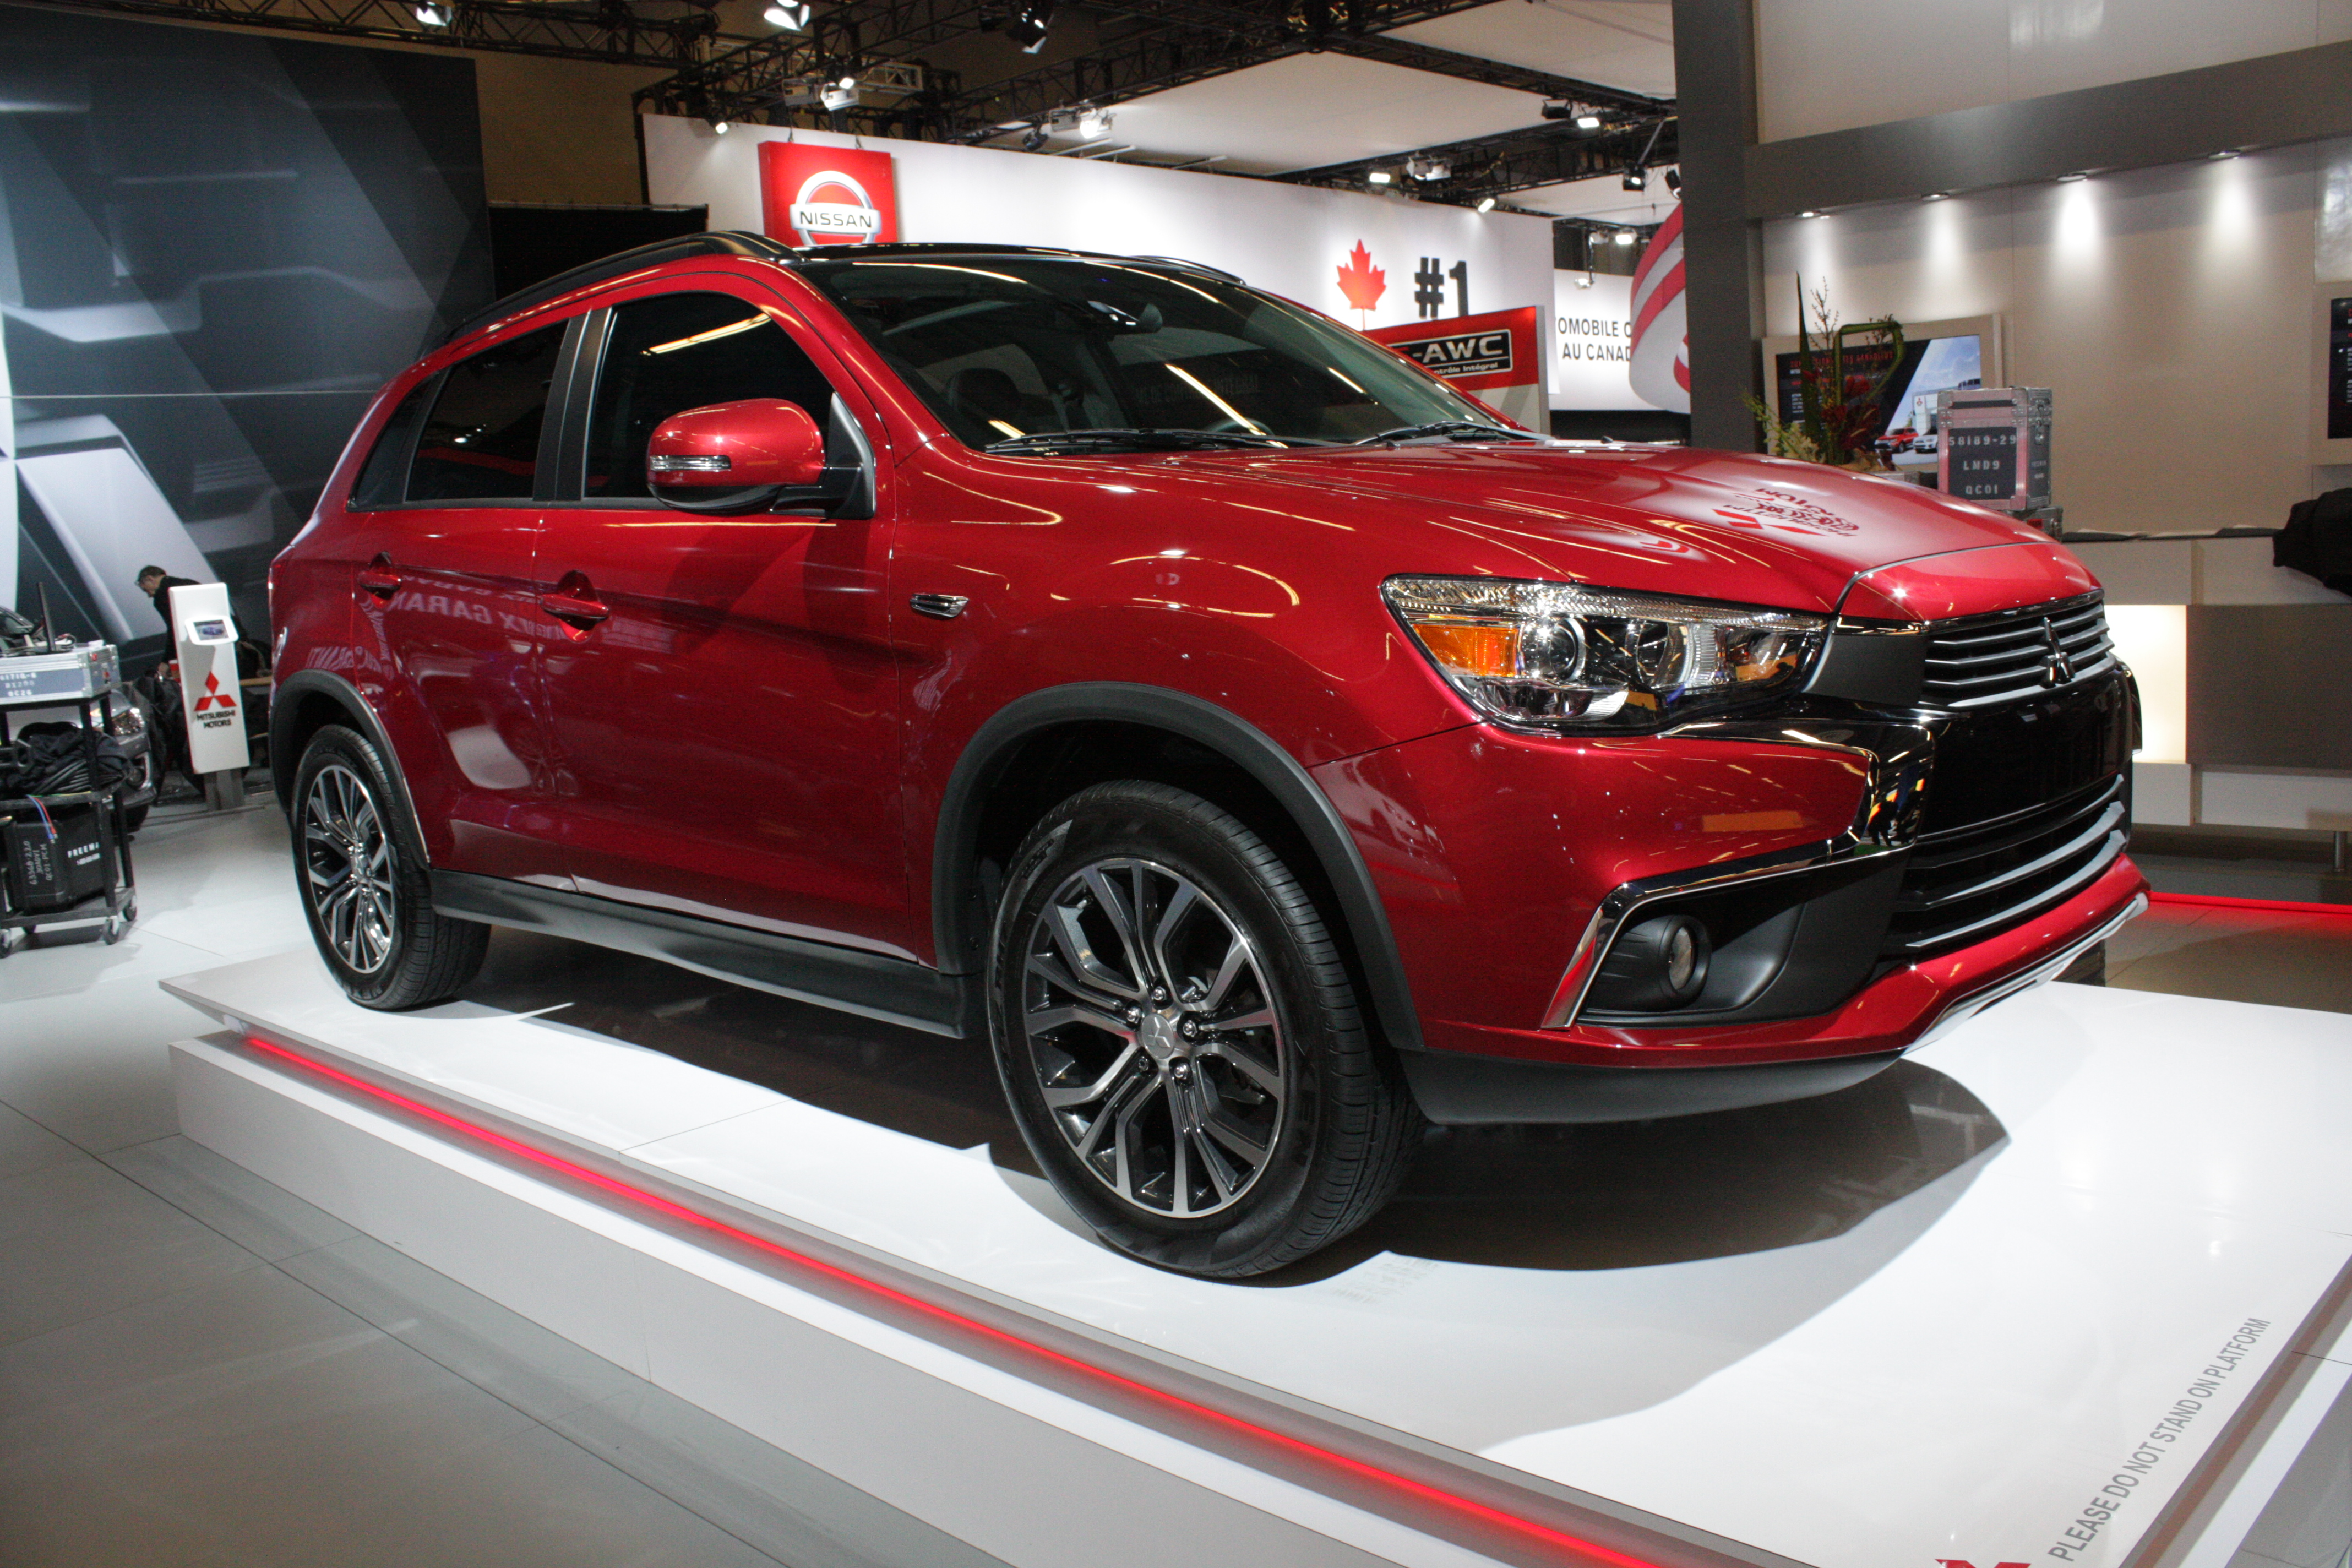 Mitsubishi showed a trio of models basking in the glow of Canadian auto show lights for the first time. One is the significantly-updated RVR compact crossover...